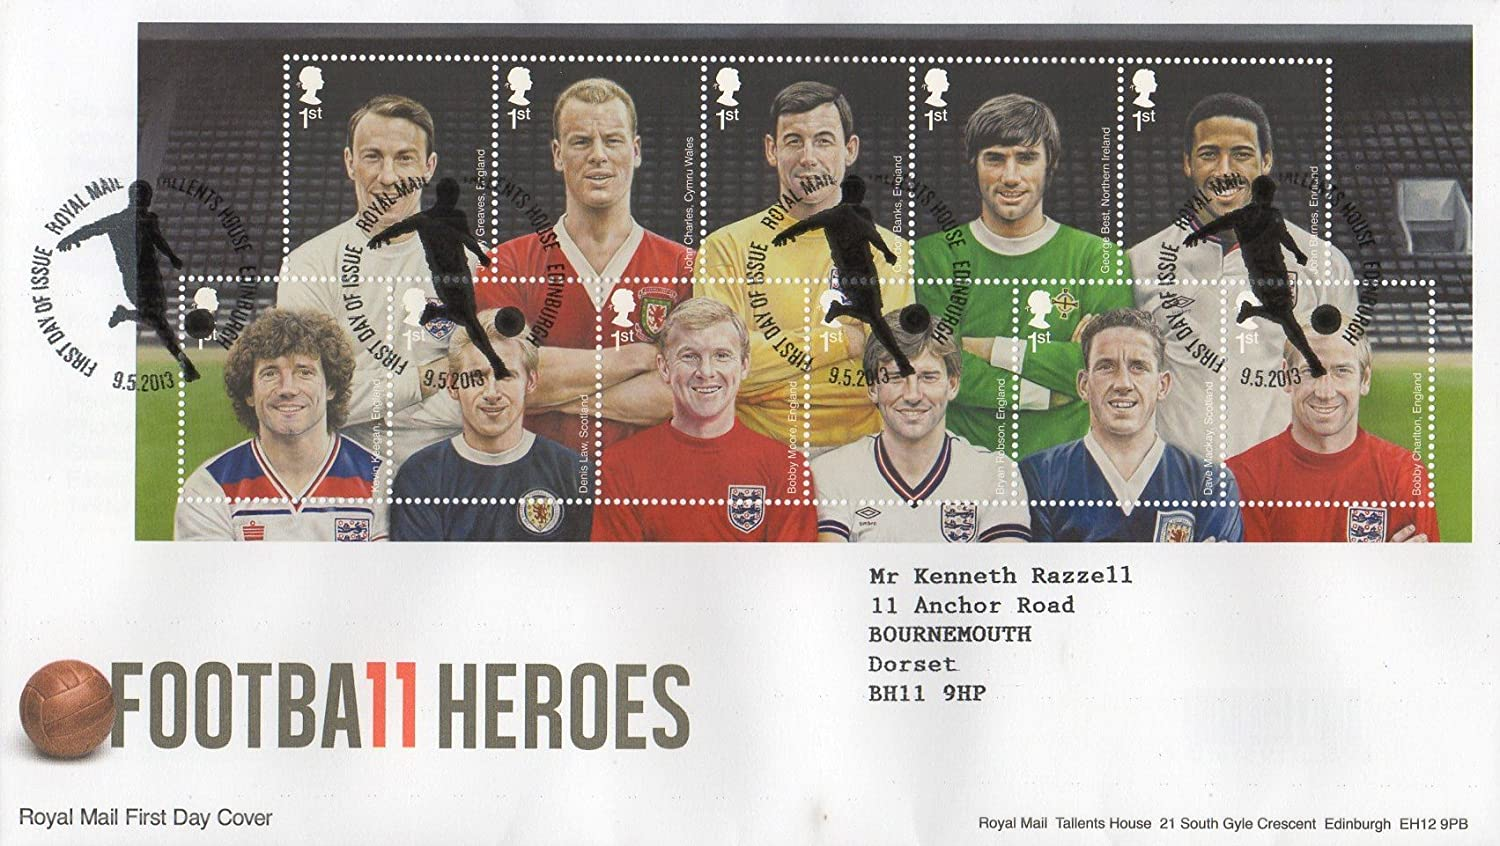 2013 FOOTBALL HEROES TALLENTS HOUSE EDINBURGH FIRST DAY COVER